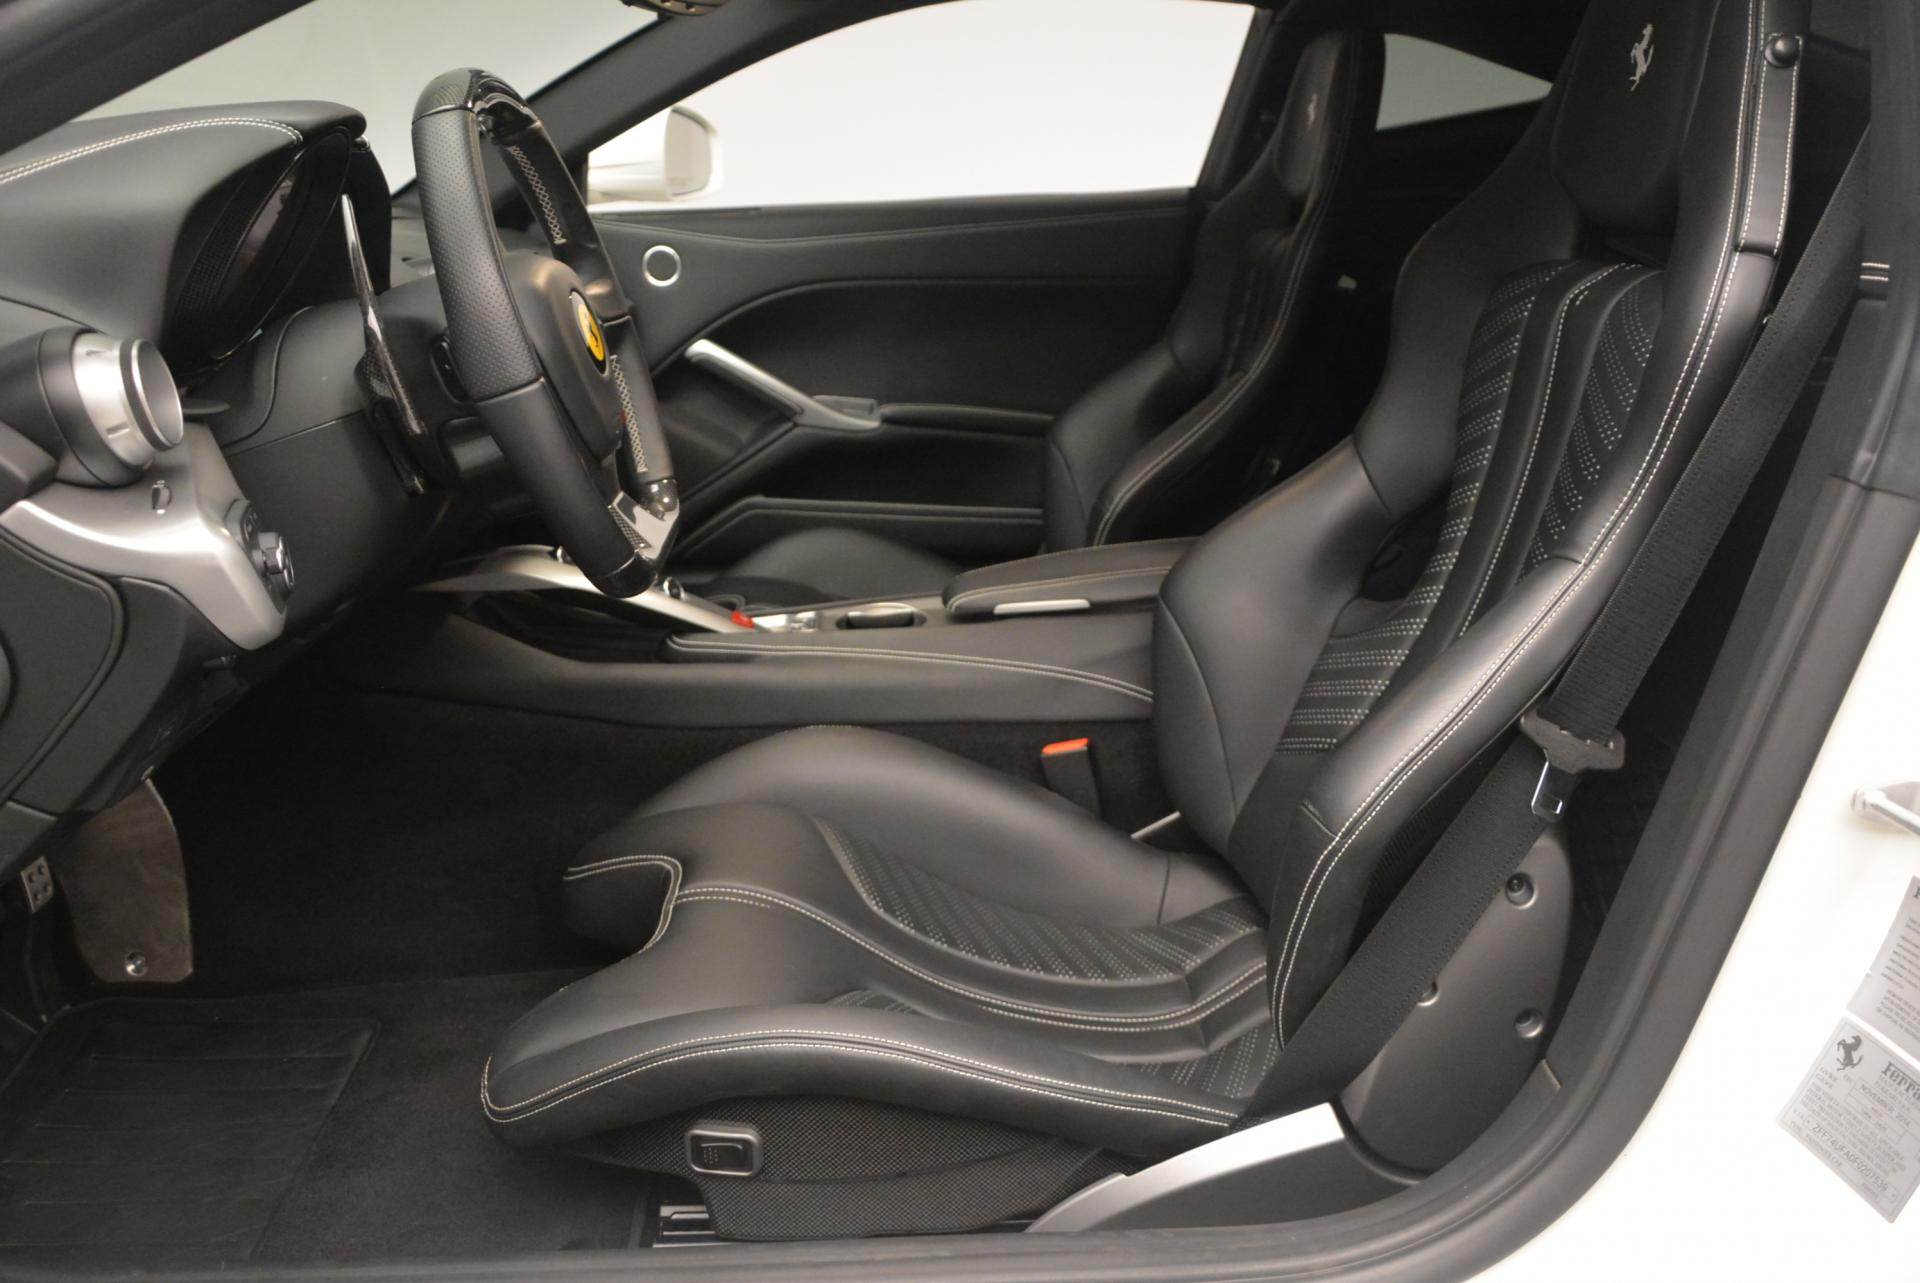 Used 2015 Ferrari F12 Berlinetta  For Sale In Greenwich, CT. Alfa Romeo of Greenwich, 4549 546_p15